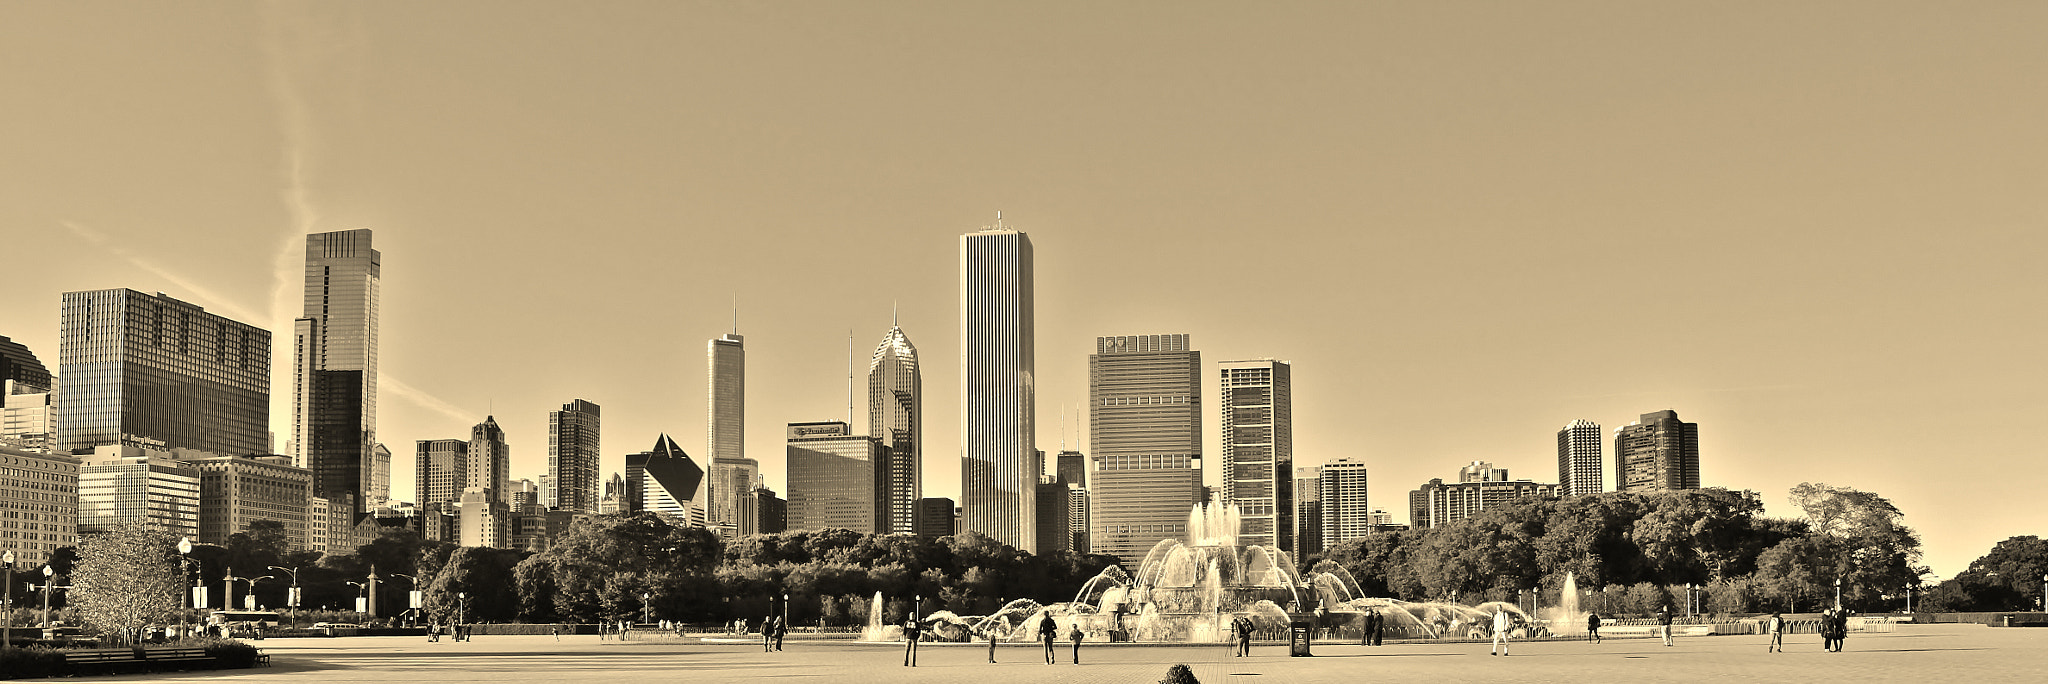 Photograph Chitown by Mc Philip Sevilla on 500px